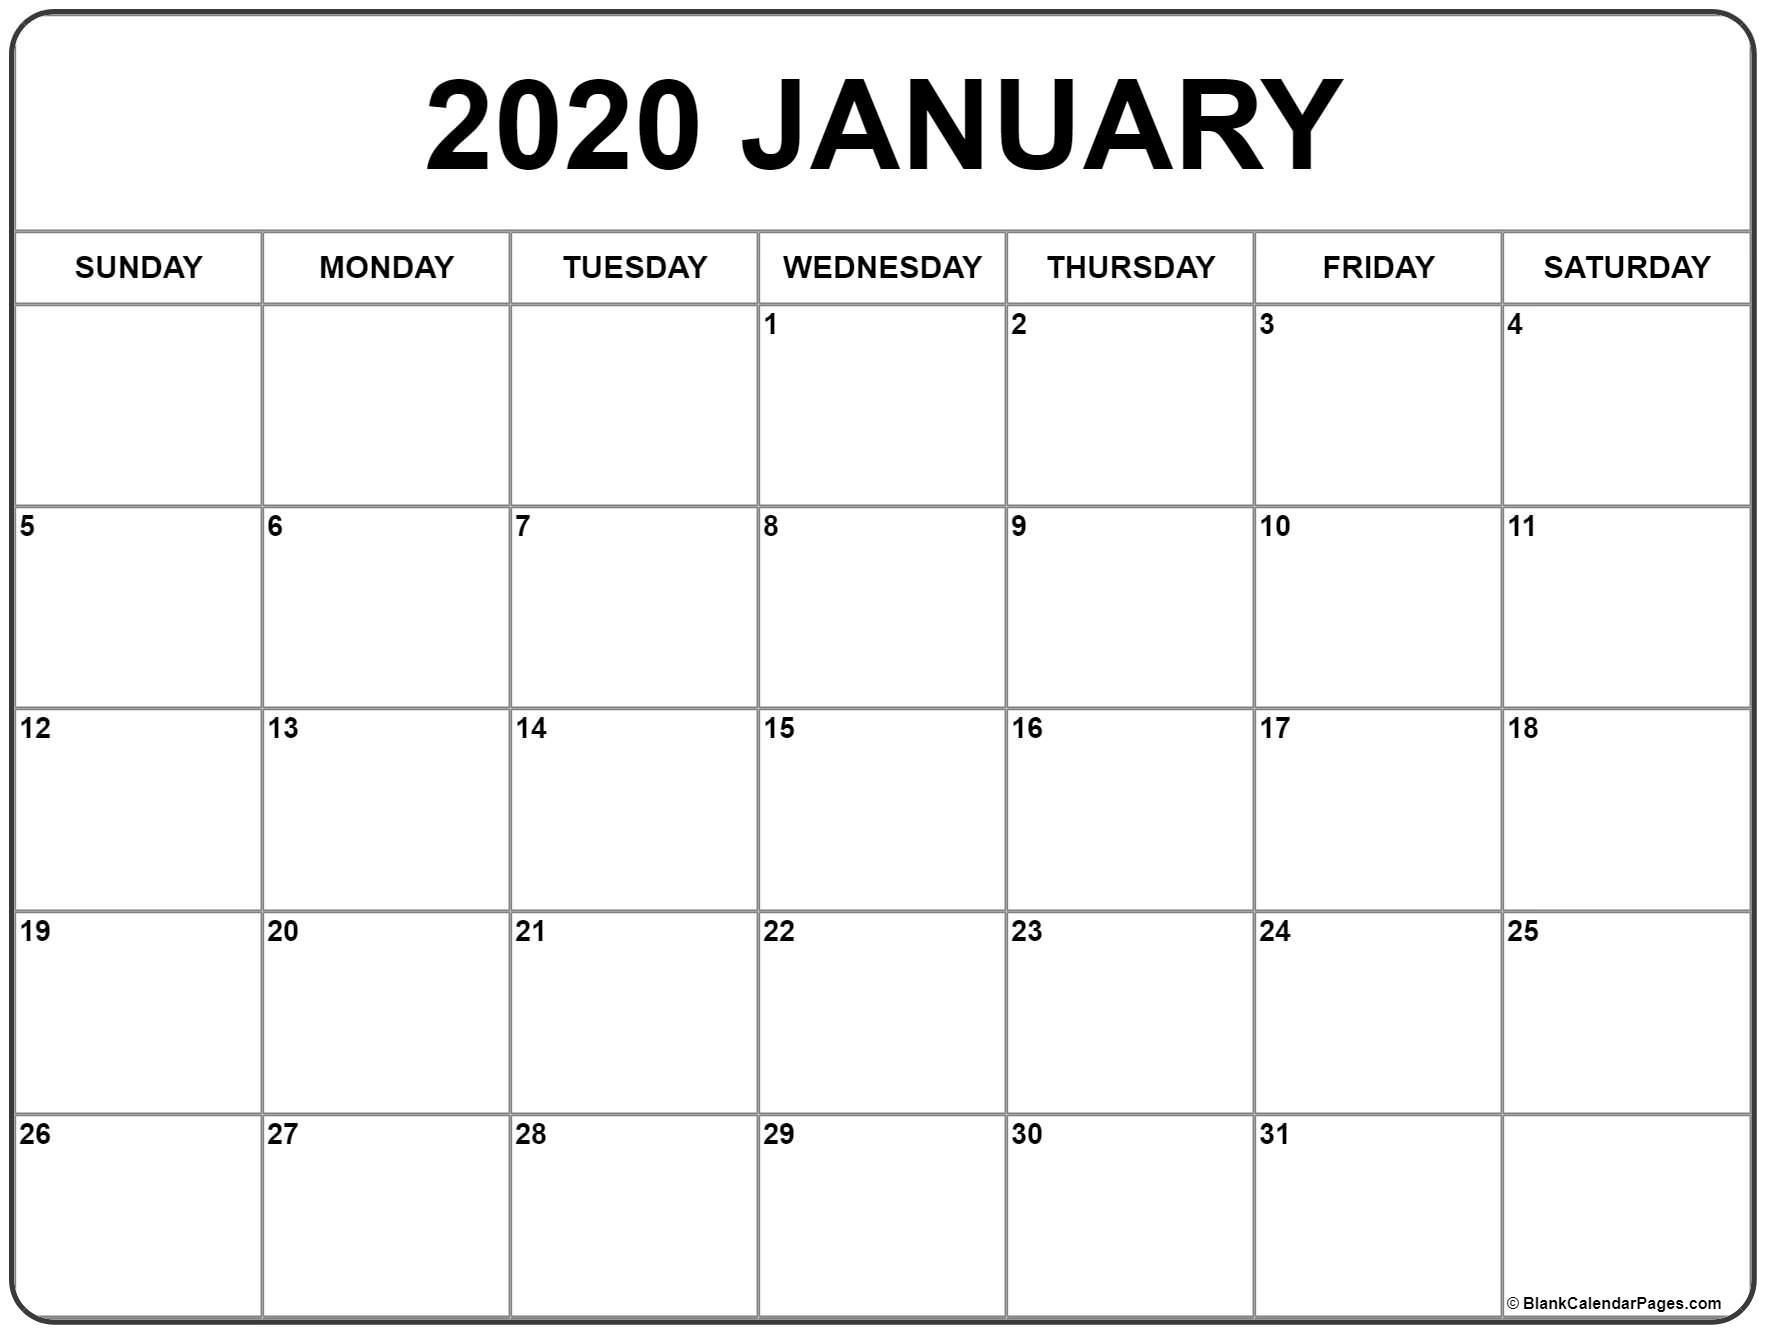 January 2020 Calendar Wallpapers - Top Free January 2020